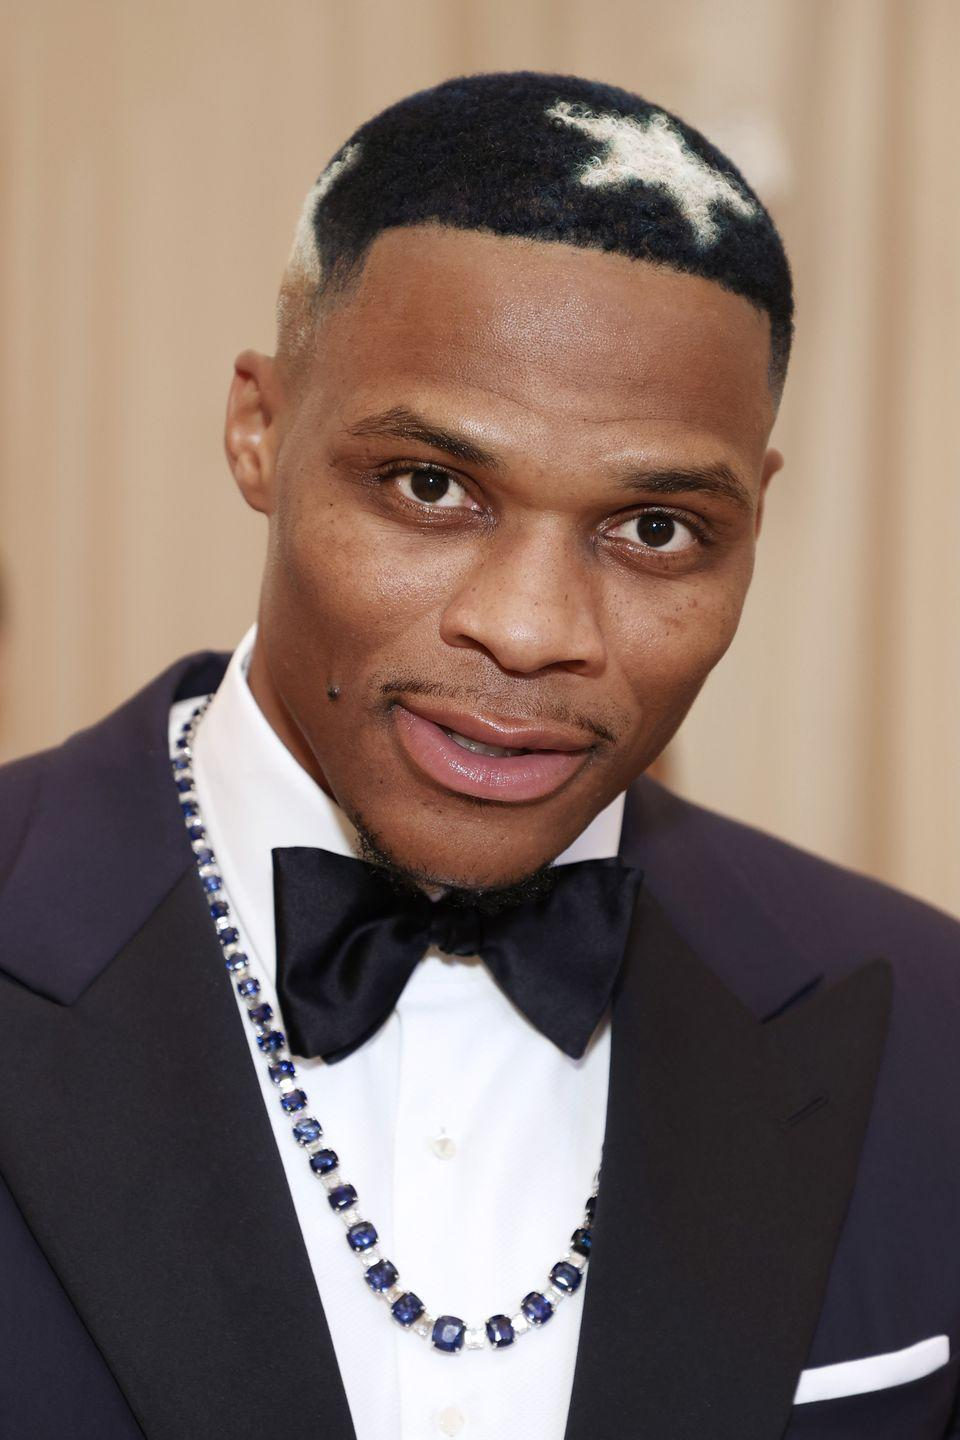 <p>Certified Lover Boy Drake first popularized the heart cut-out, and now we have Russell Westbrook submitting his own take on the classic dark Caesar fade.</p>